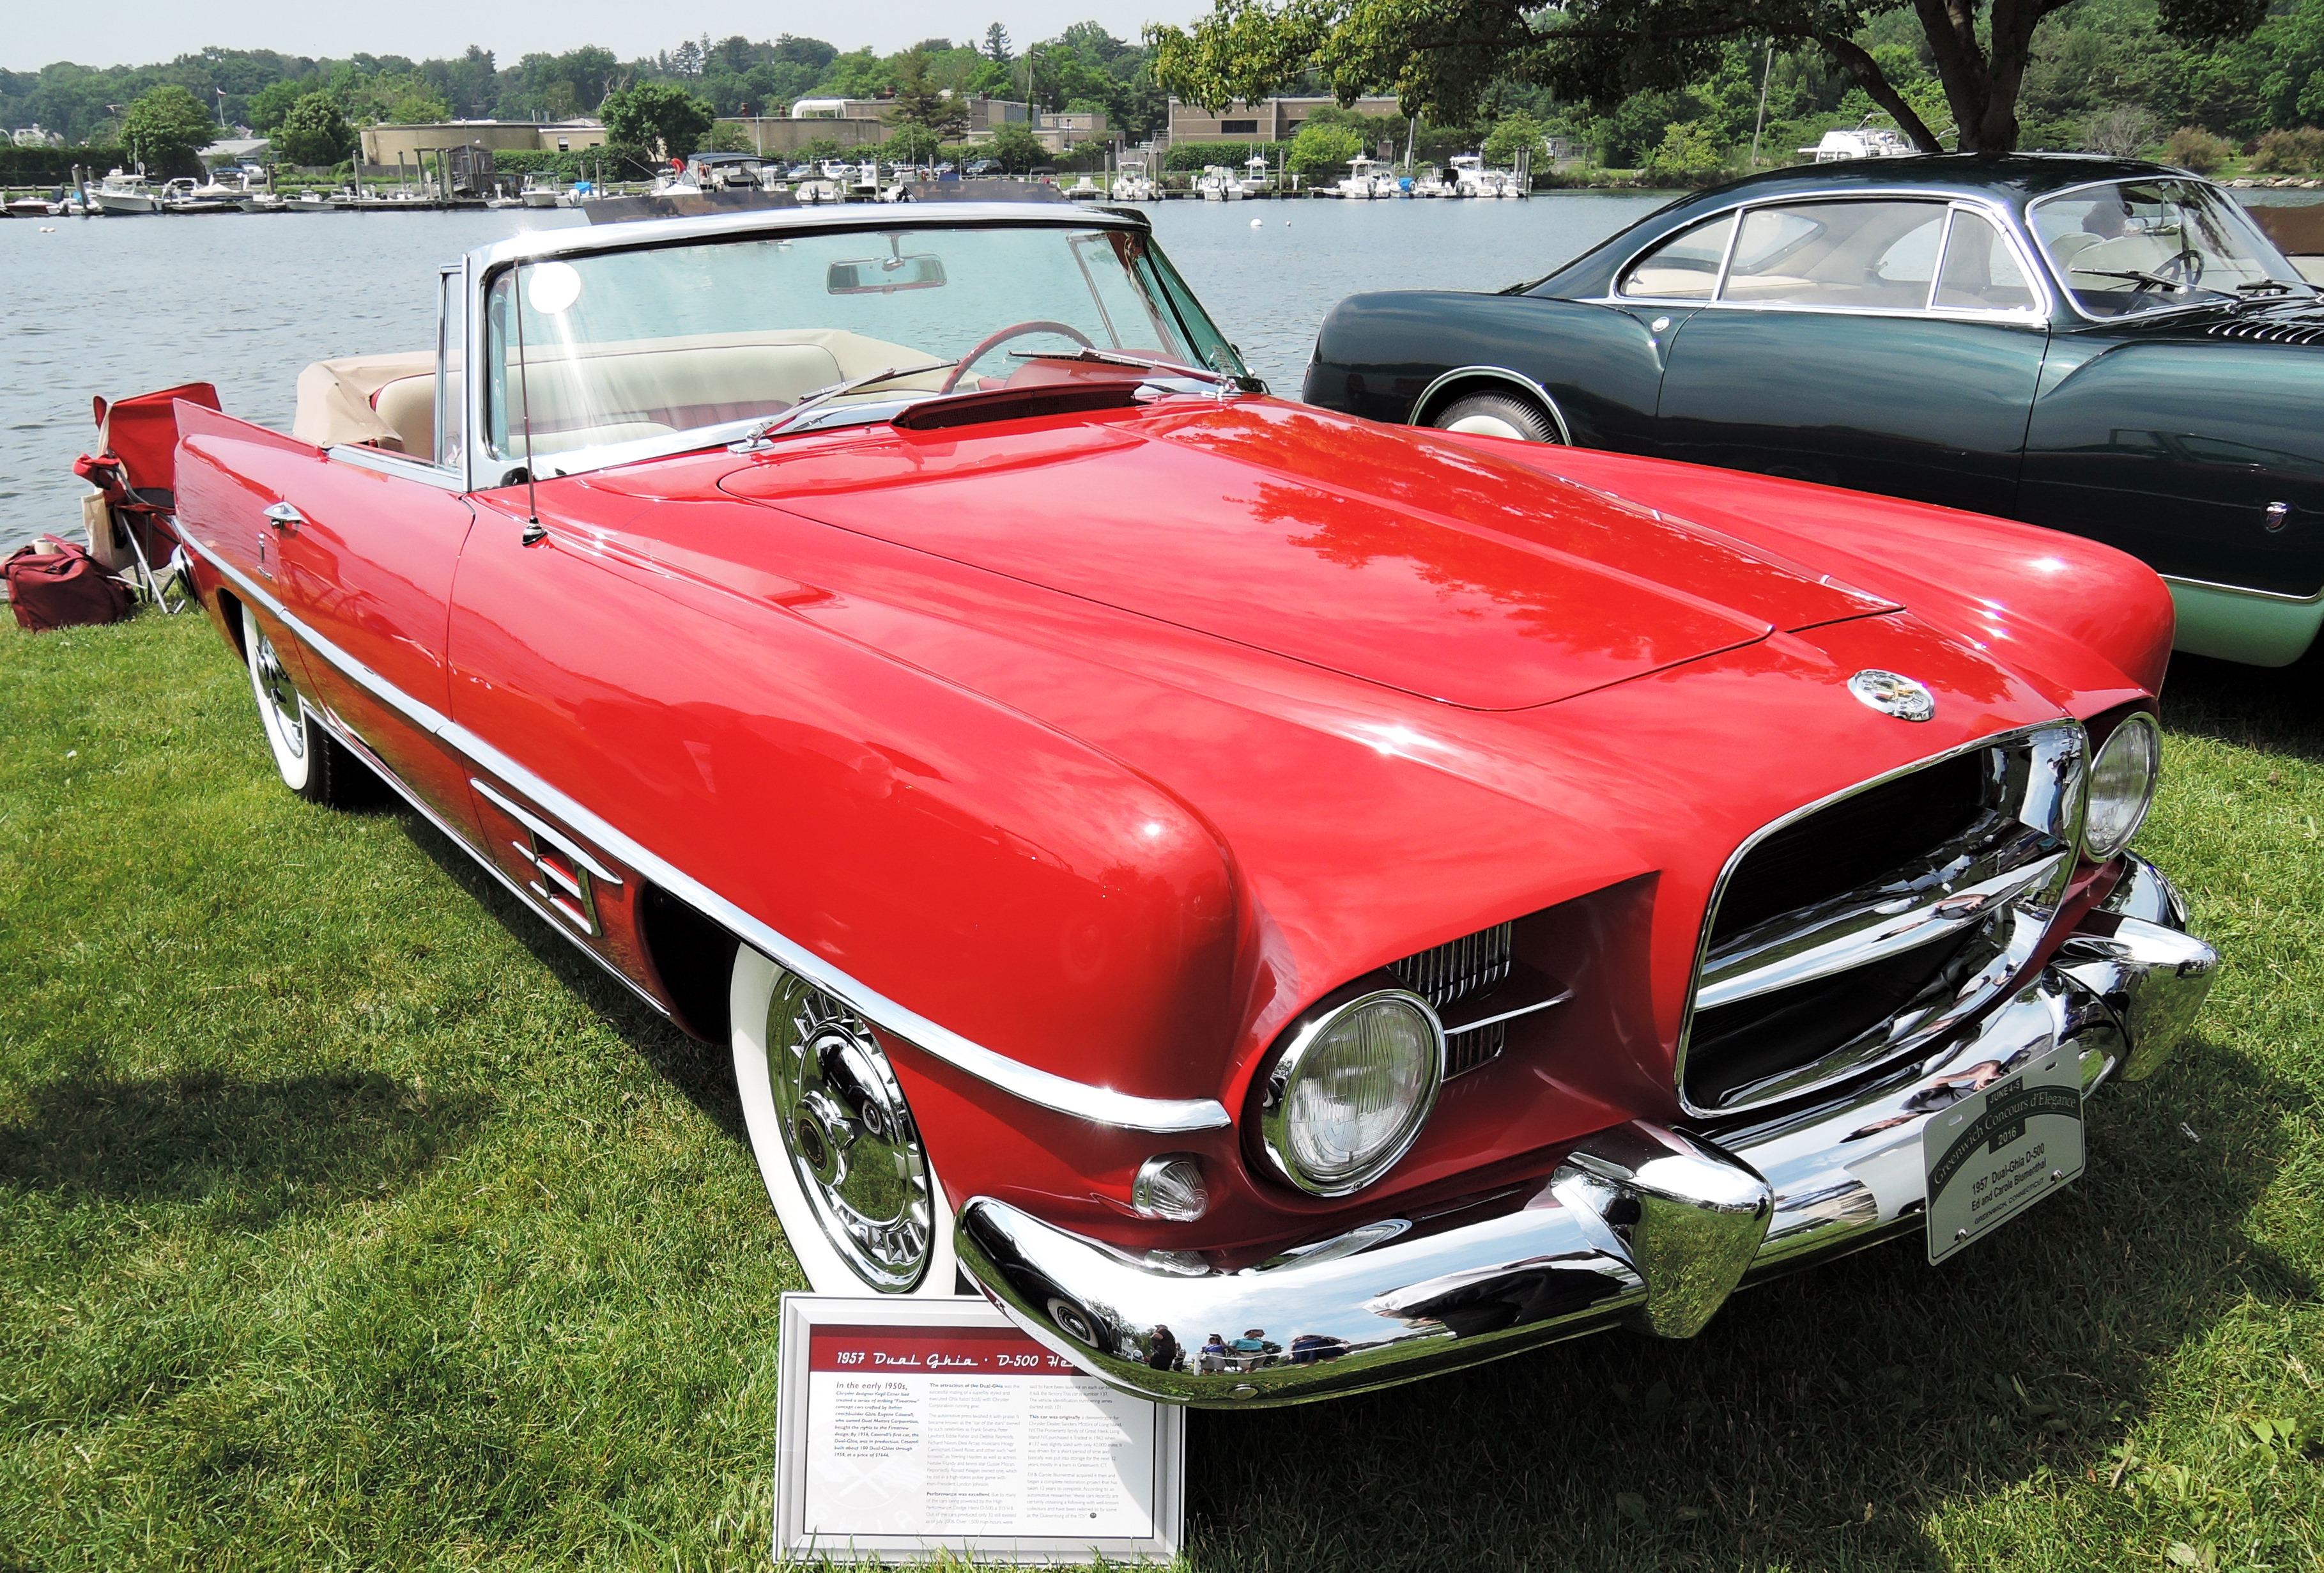 red 1957 Dual-Ghia D-500 - greenwich concours